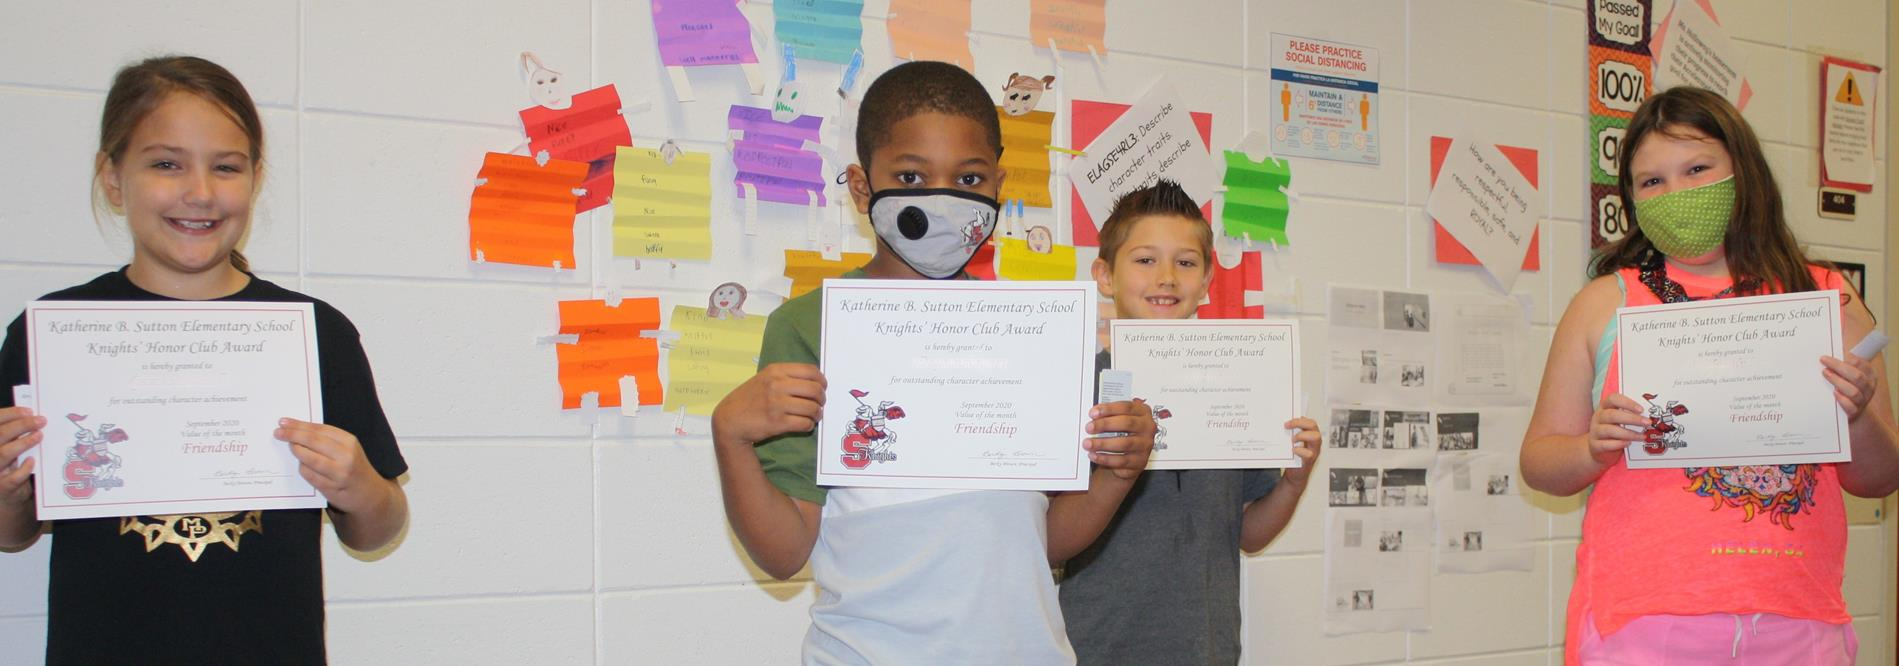 Knights Honor club members show off their certificates.